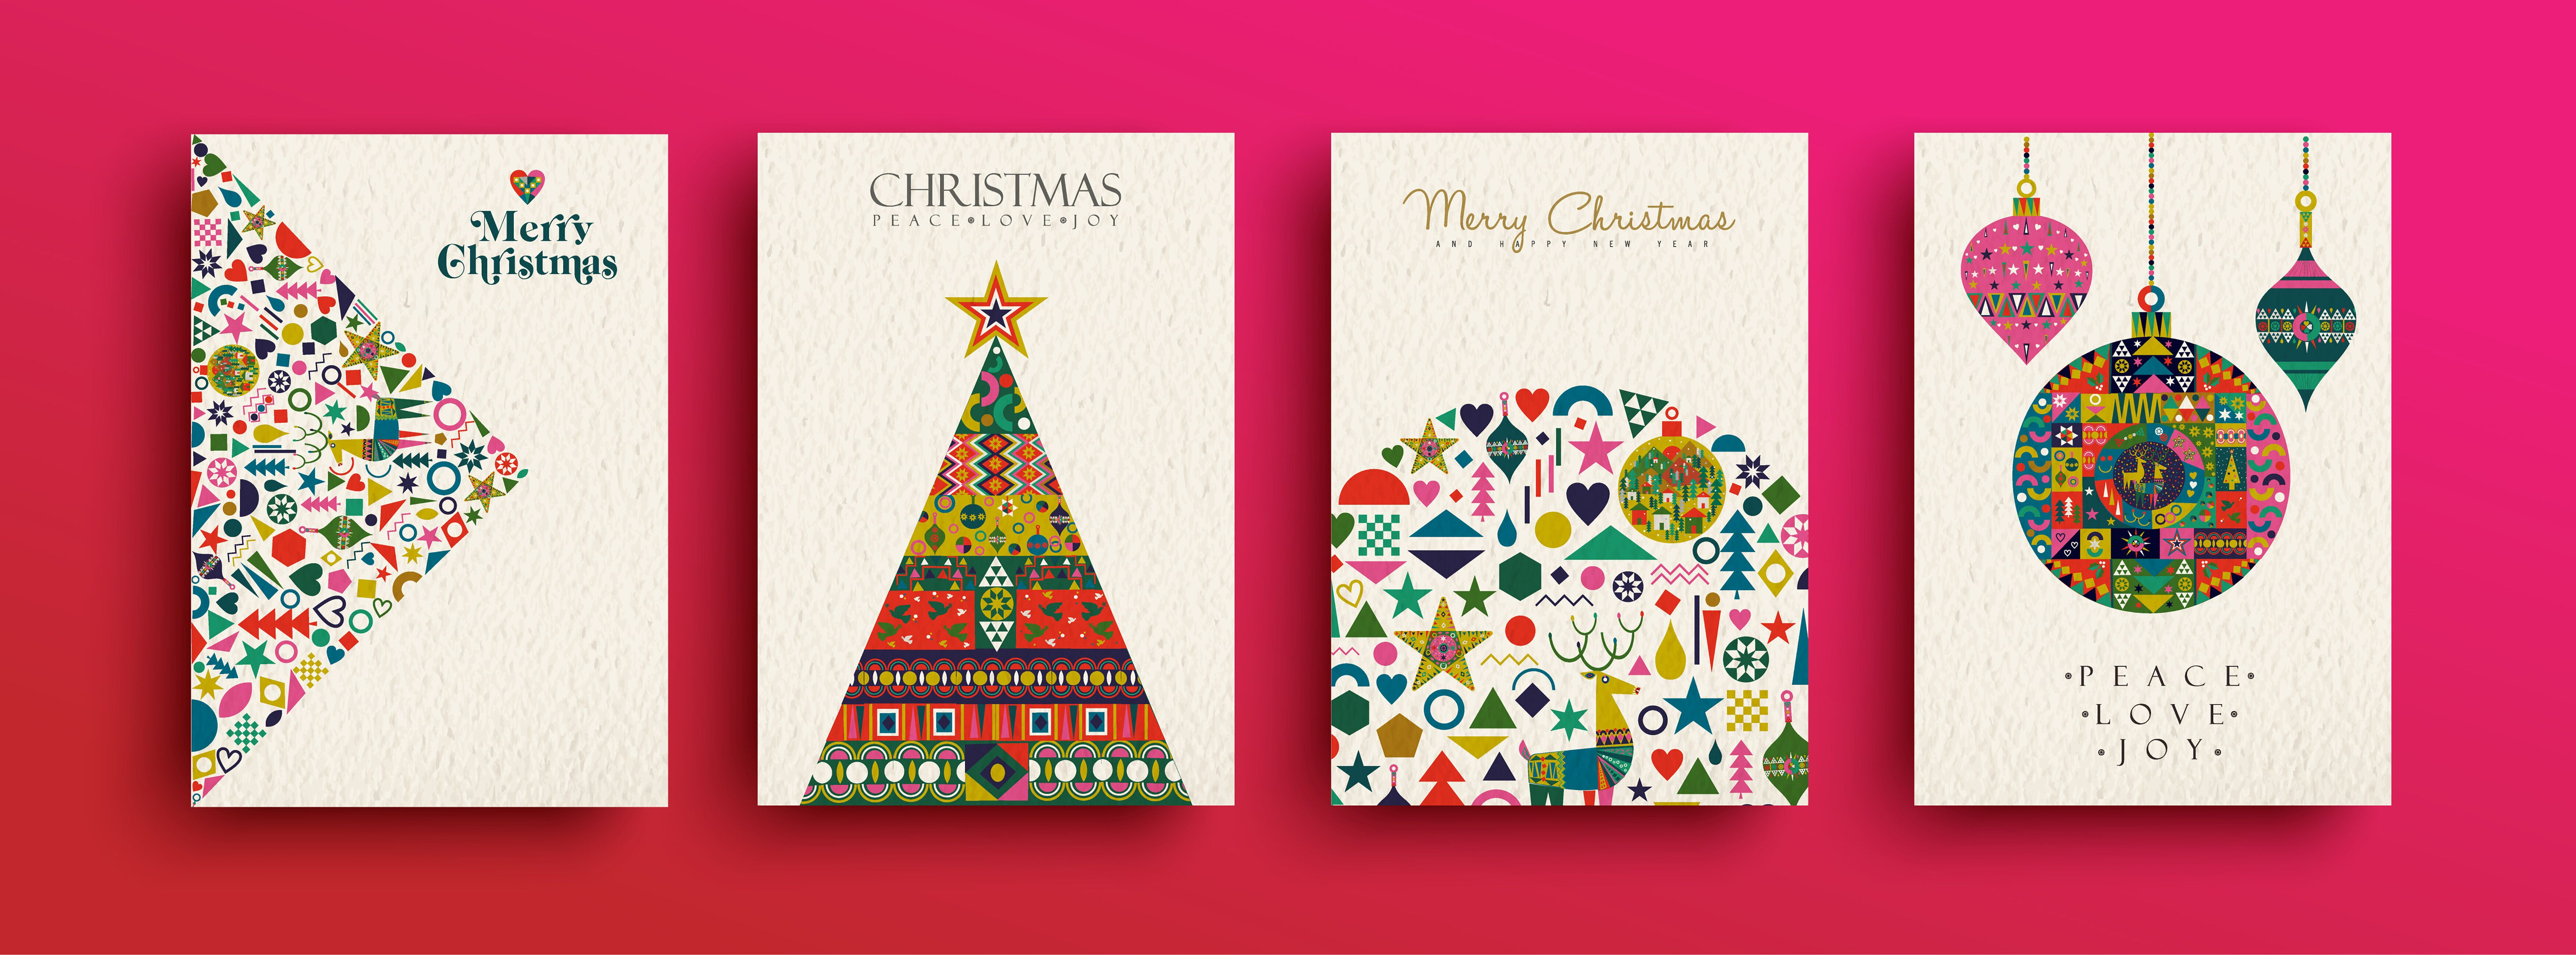 Neighbours and Friends at Christmas Traditional Christmas Greetings Card